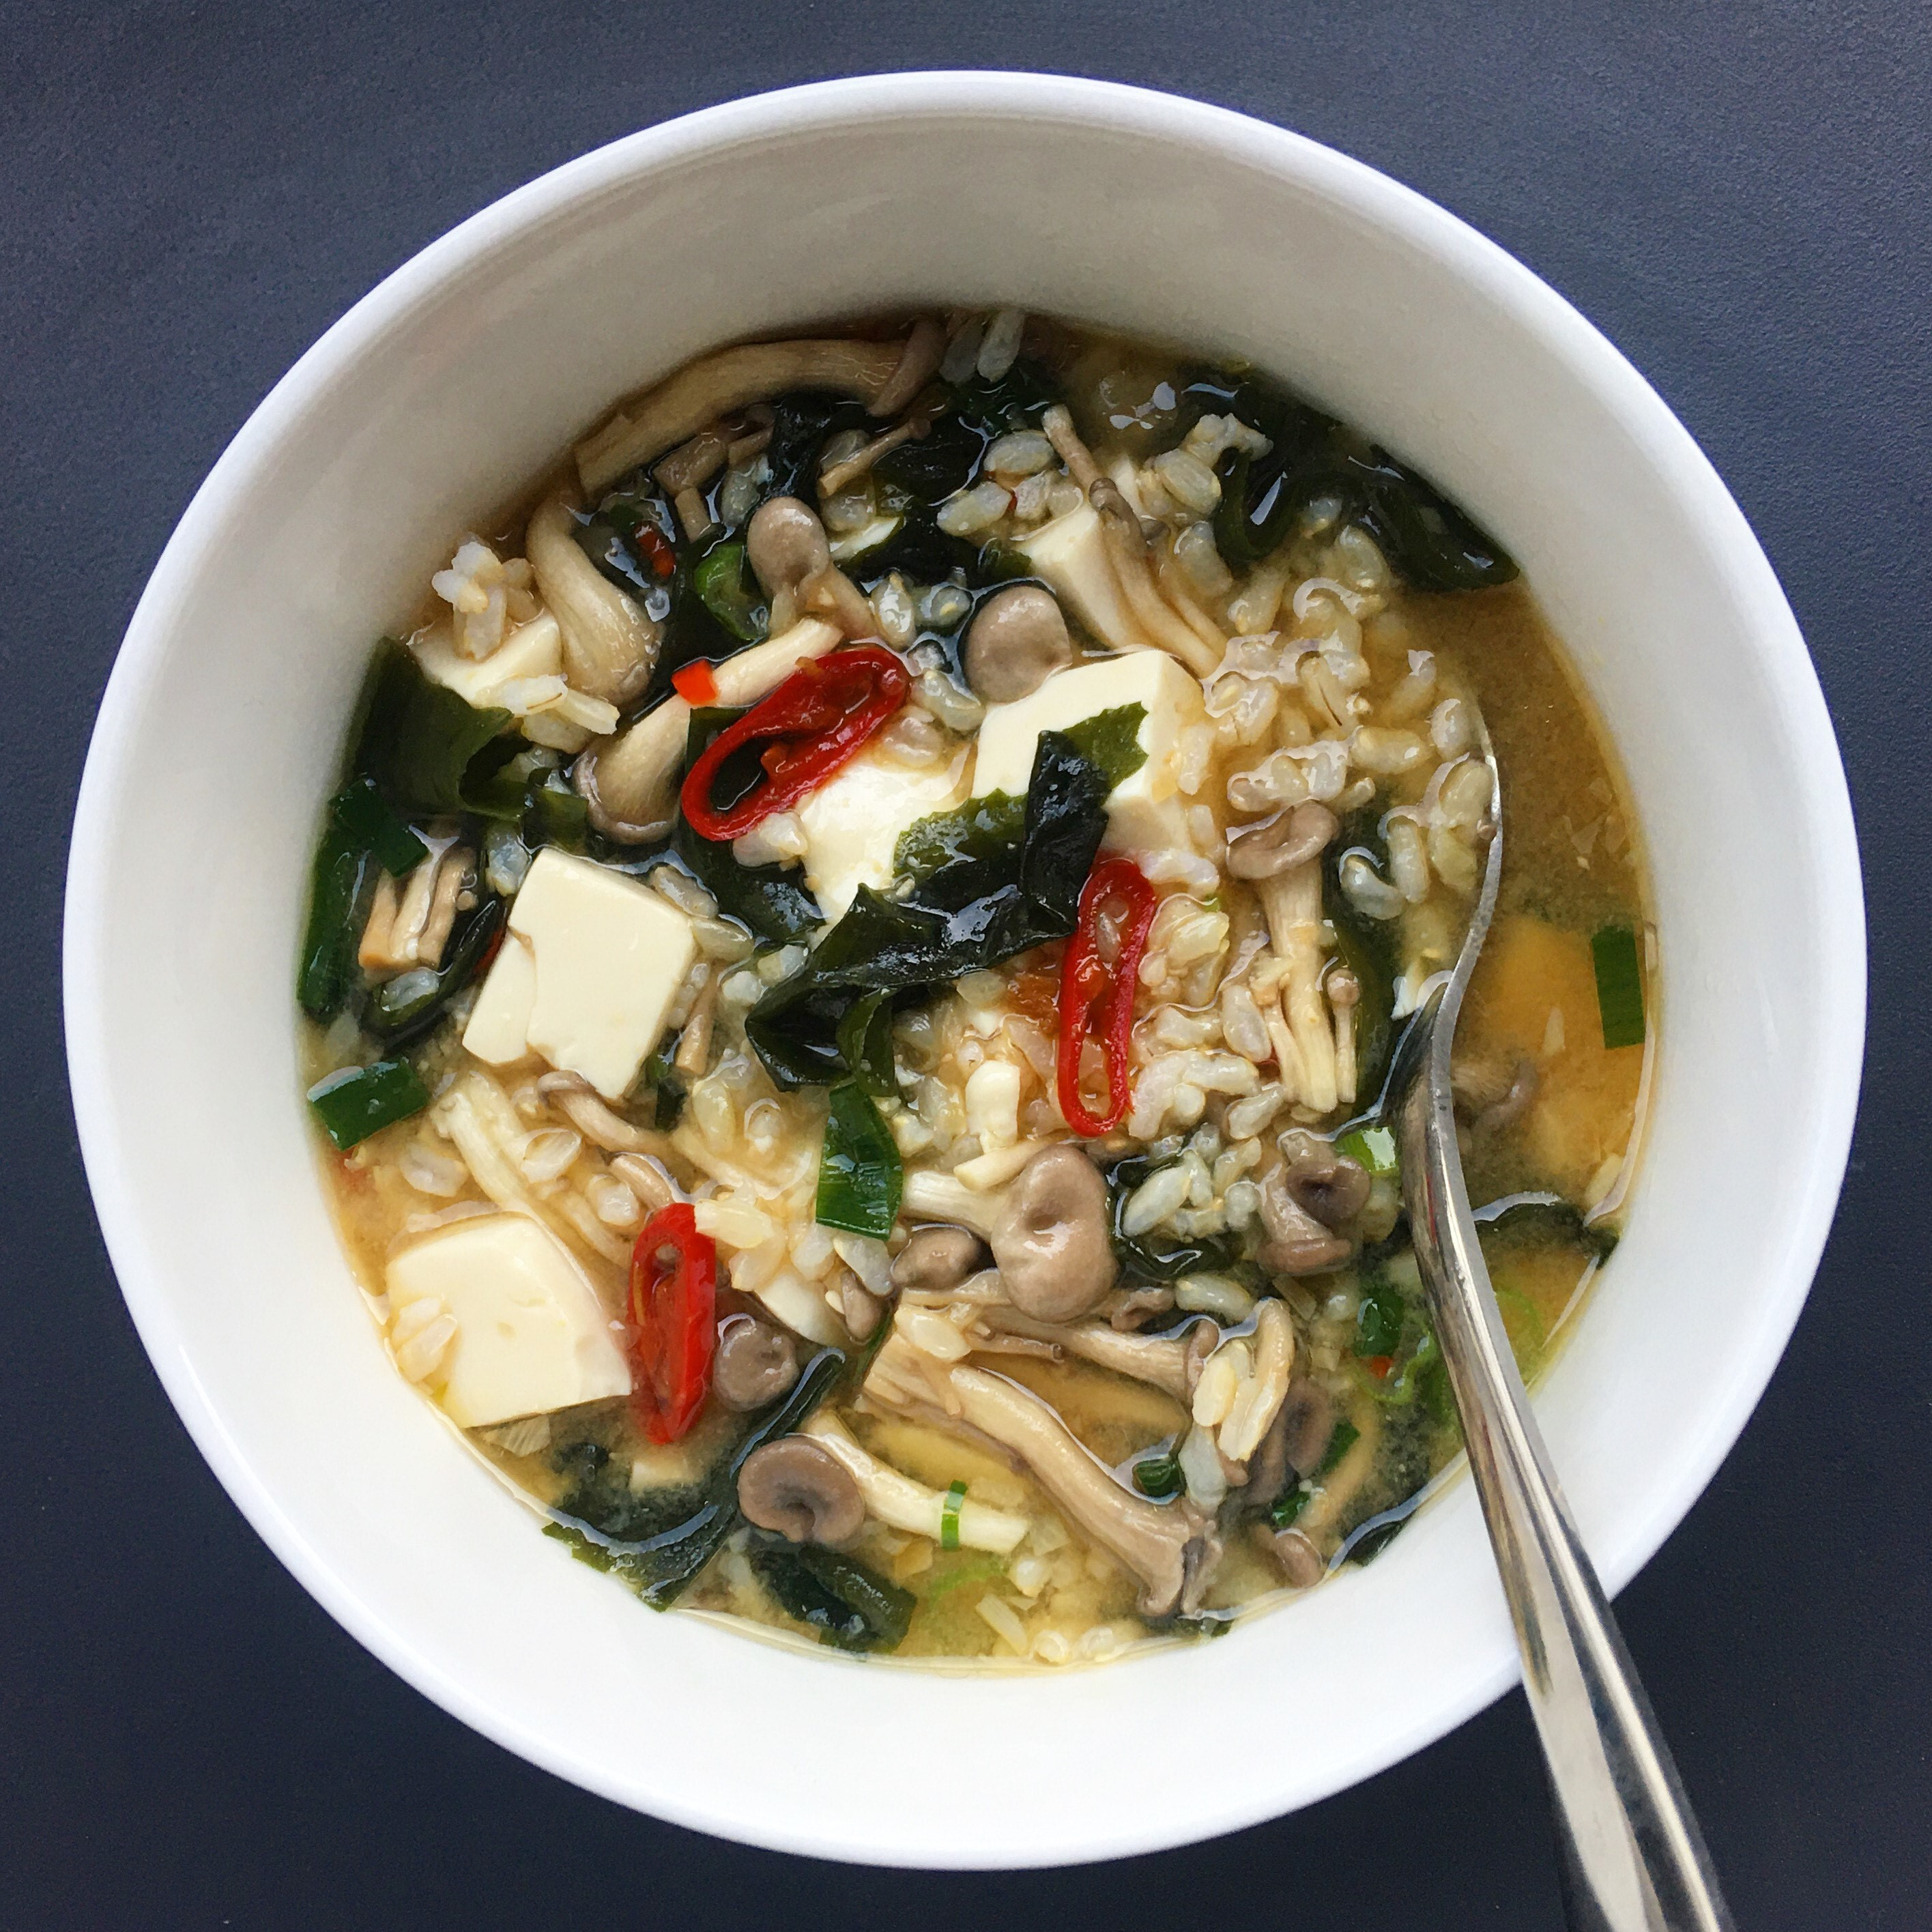 Poh's Miso & Brown Rice Soup